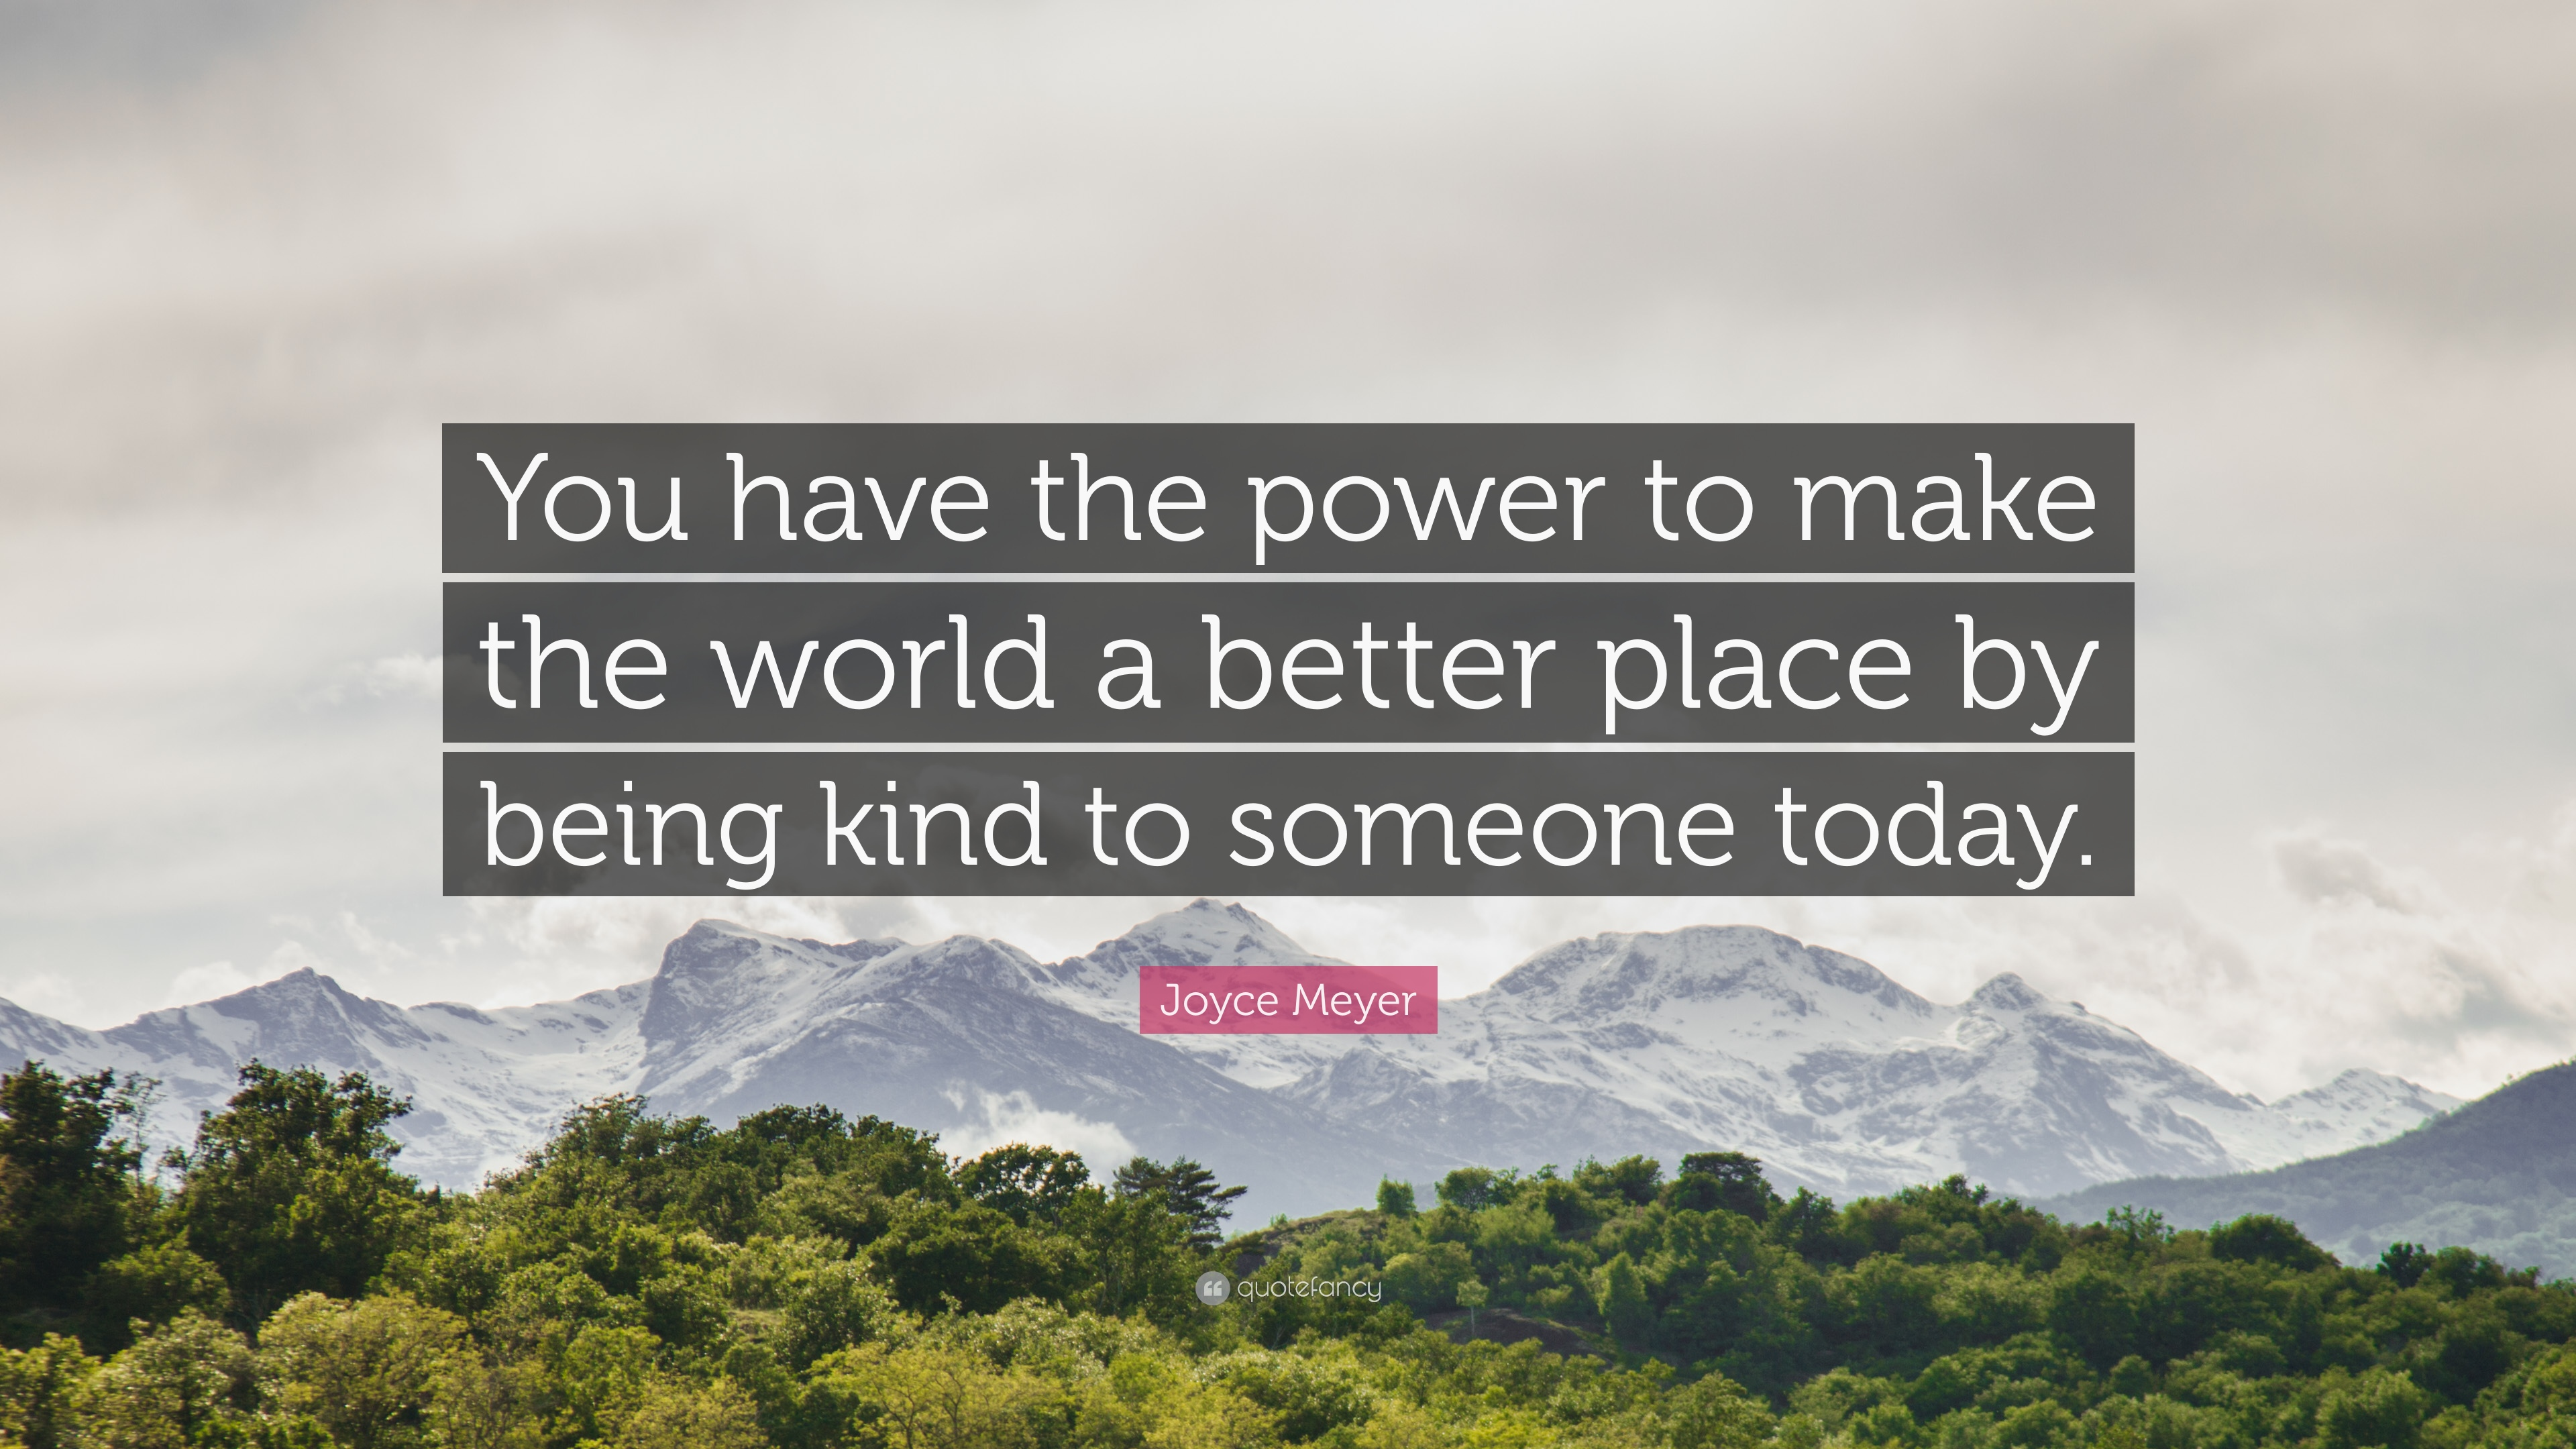 Joyce Meyer Quote You Have The Power To Make The World A Better